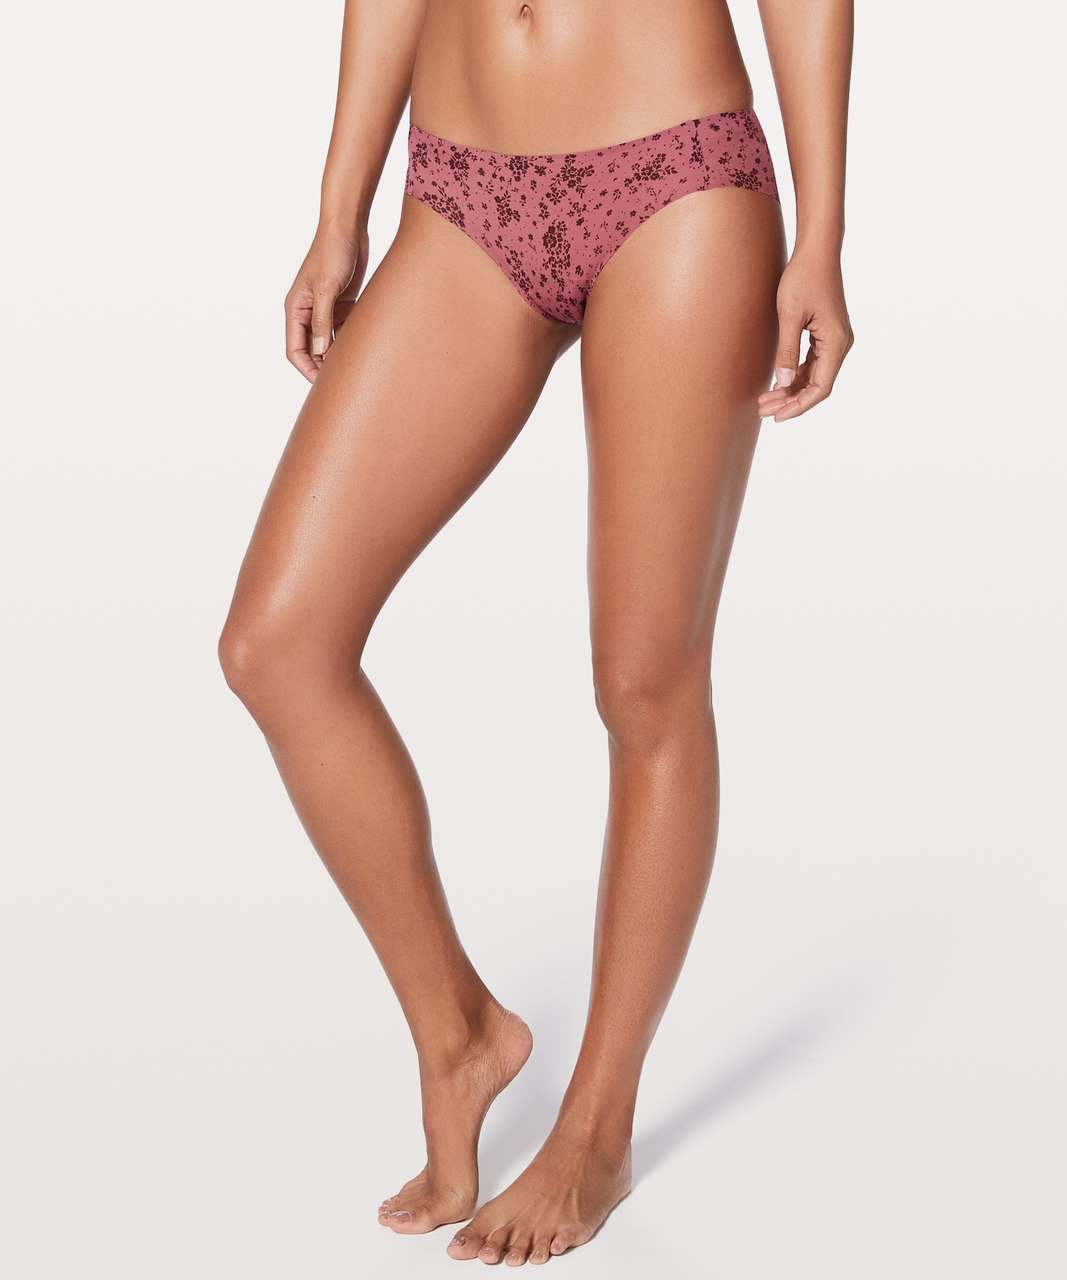 Lululemon Namastay Put Hipster - Pixie Floral So Merlot Redwood